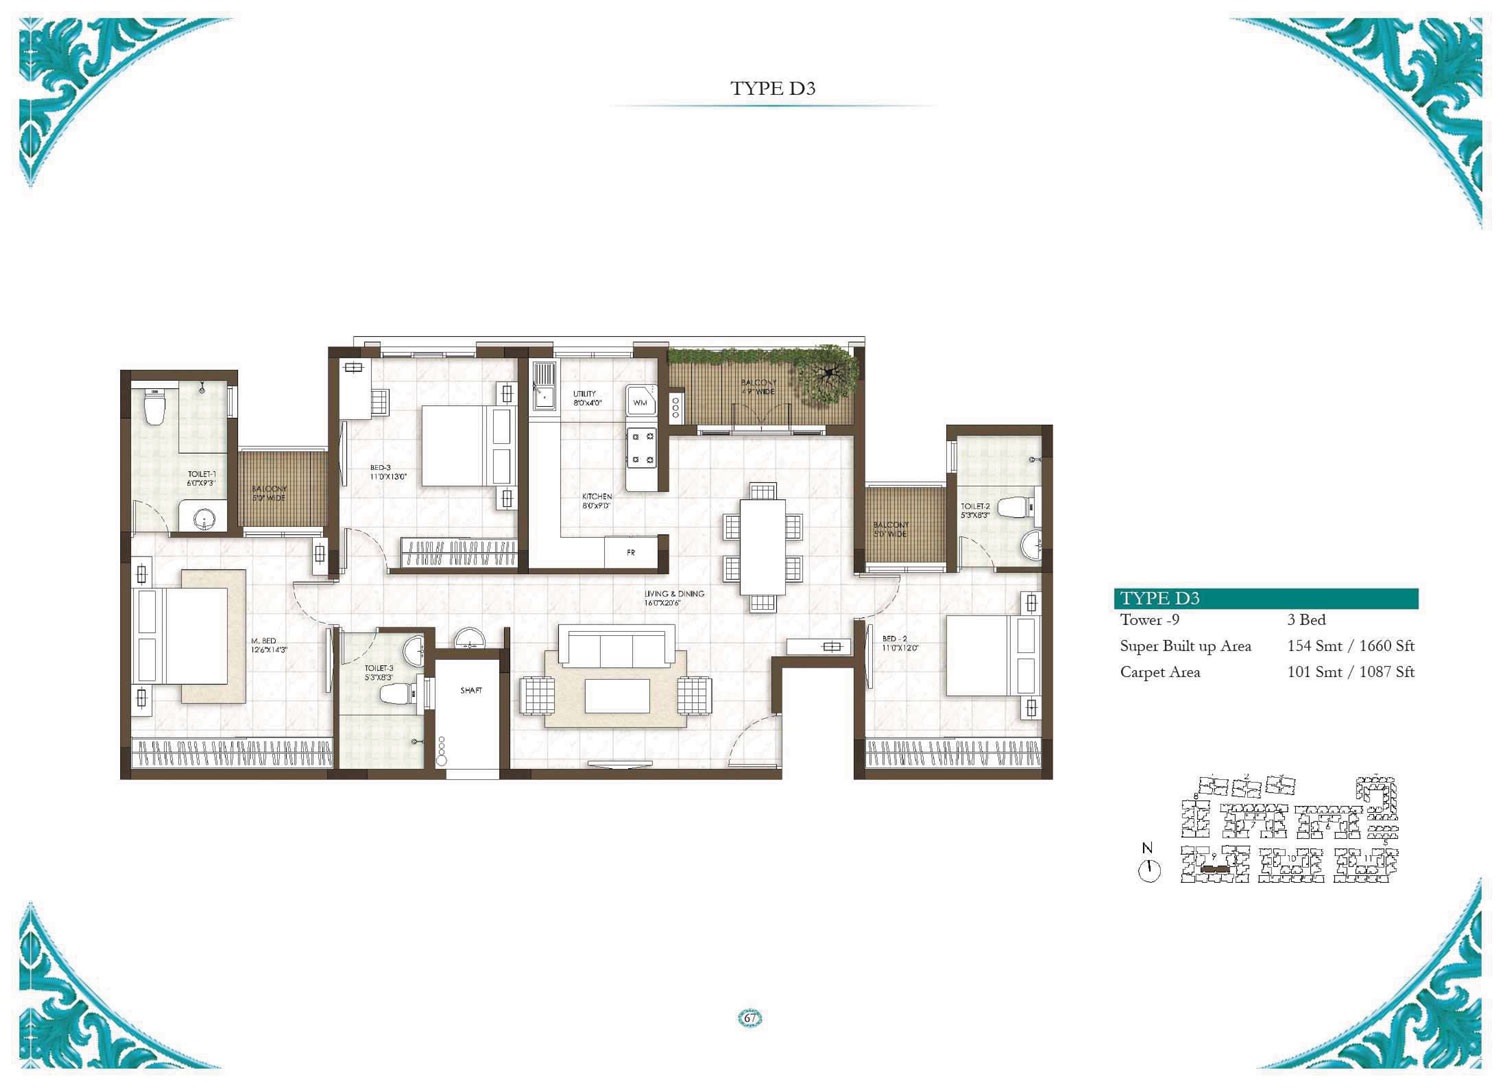 Type D3 - 3 Bed - 1660 Sq Ft